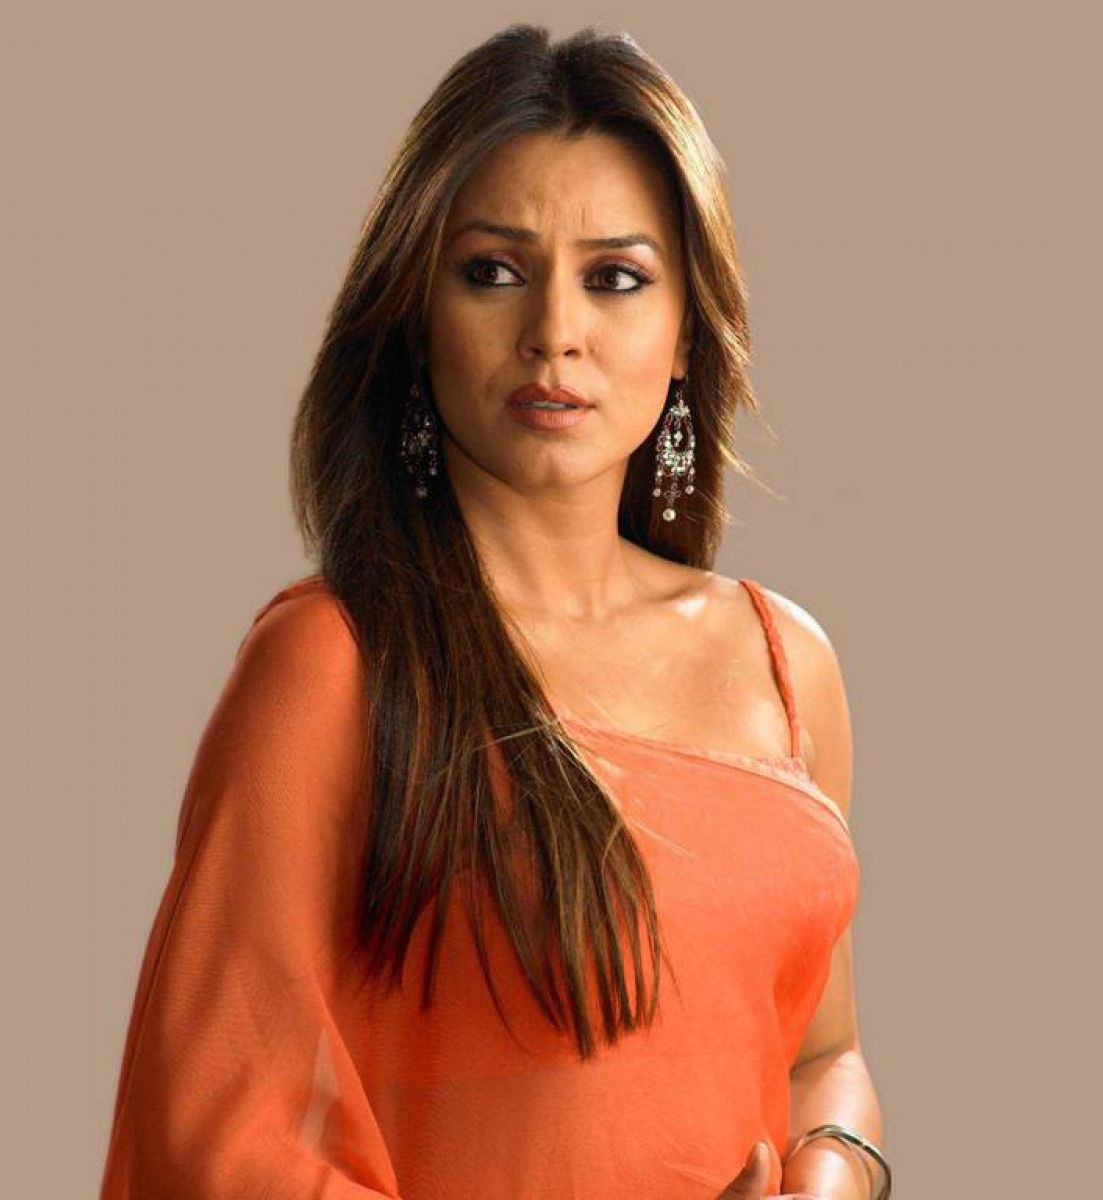 The Mahima chaudhary full nude very